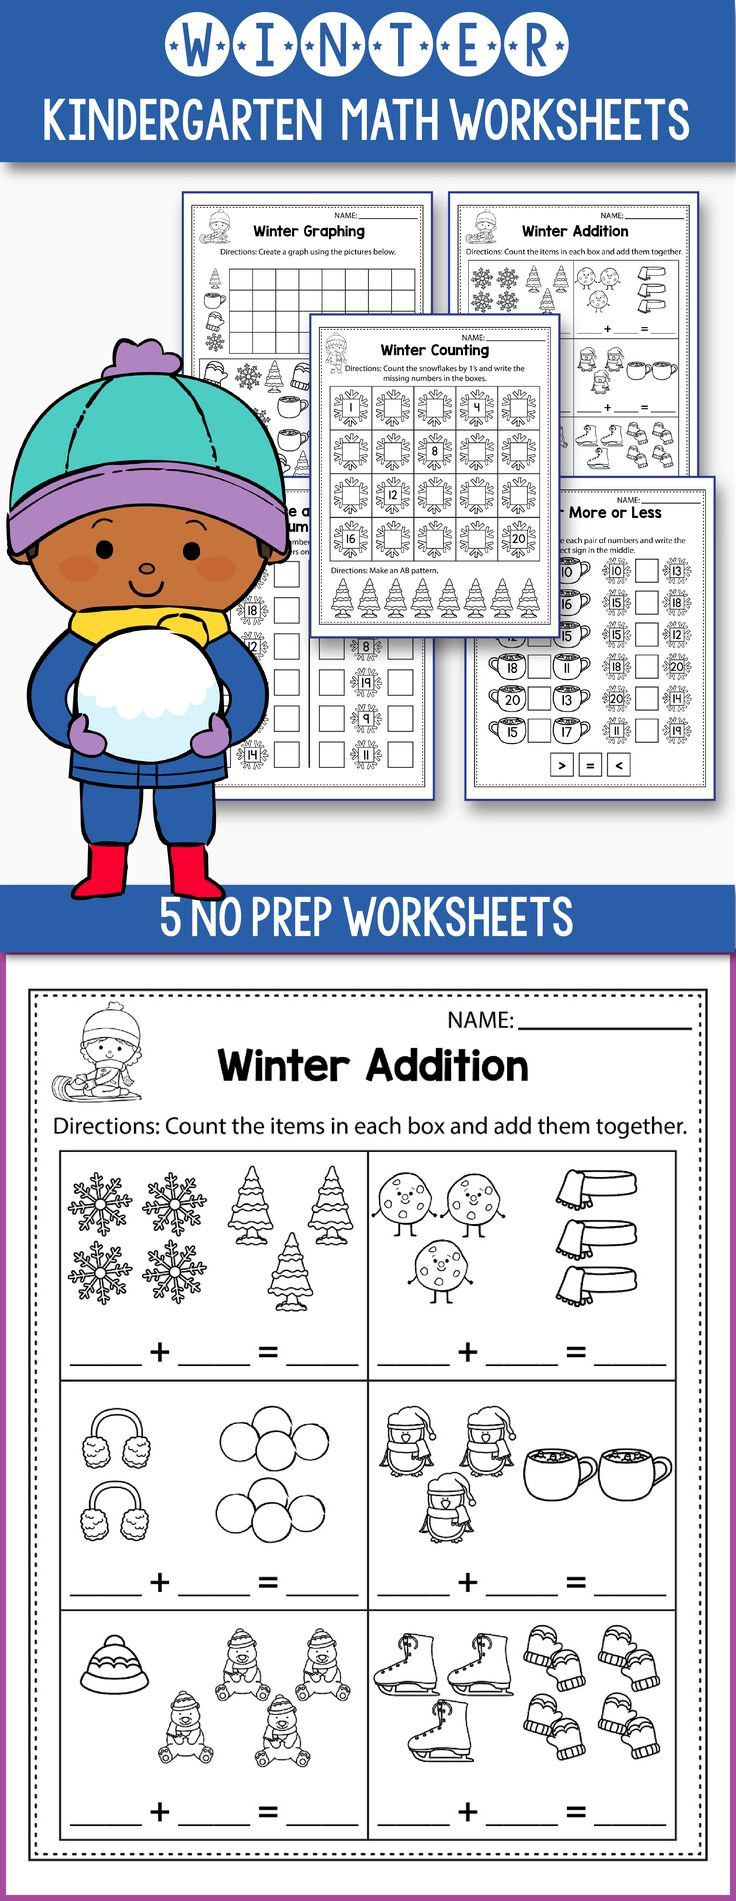 Free Winter Math Worksheets Activities Preschool December Morning Work Holidays Winter Math Worksheets Kindergarten Math Worksheets Addition Kindergarten